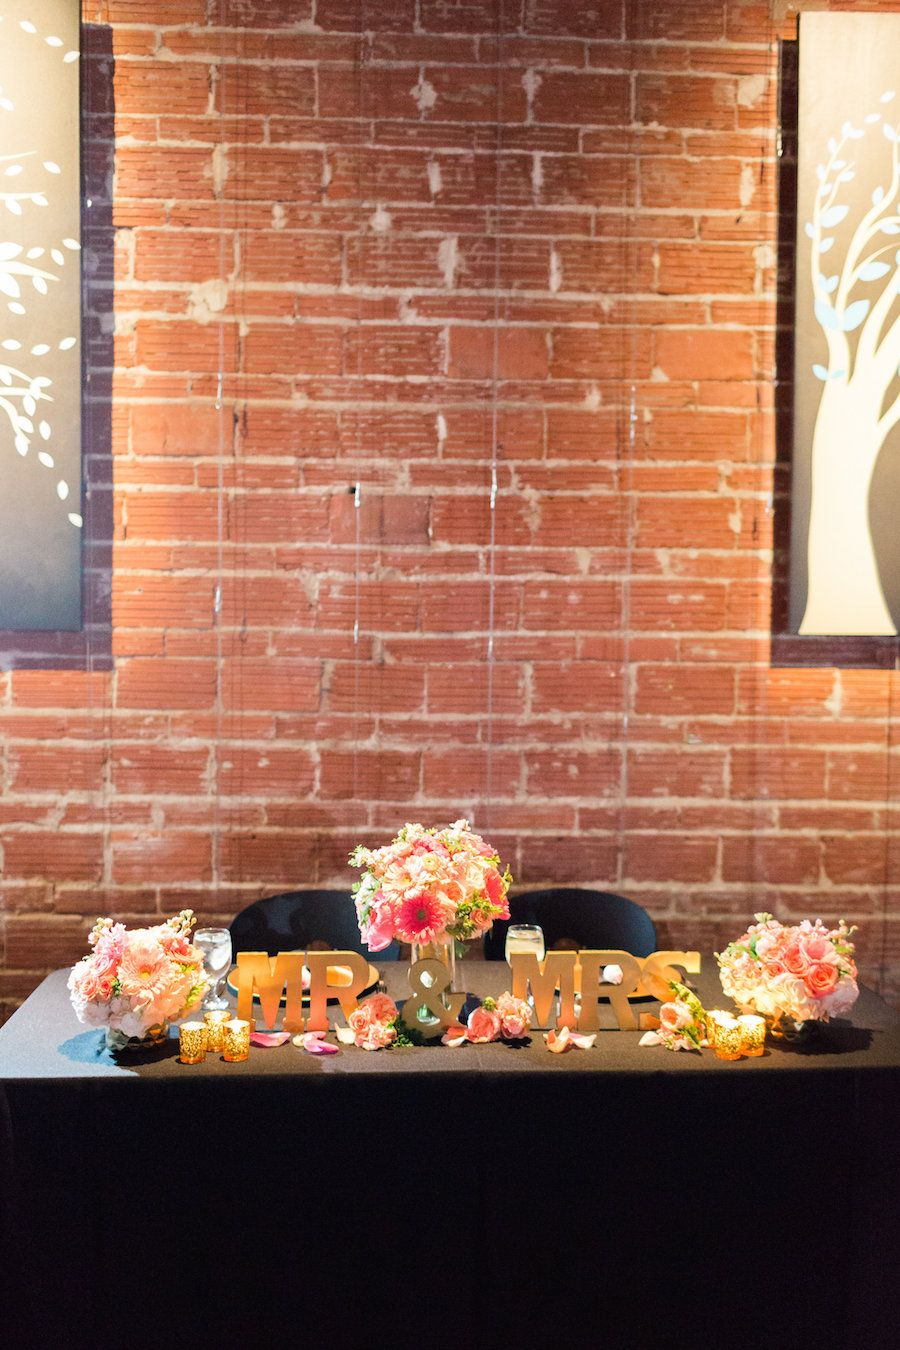 St. Pete Wedding Reception Sweetheart Table Decor with Gold Mr & Mrs Blocks and Coral and Ivory Flowers | Wedding Venues with Brick Walls in St. Pete Wedding and Event Venue NOVA 535